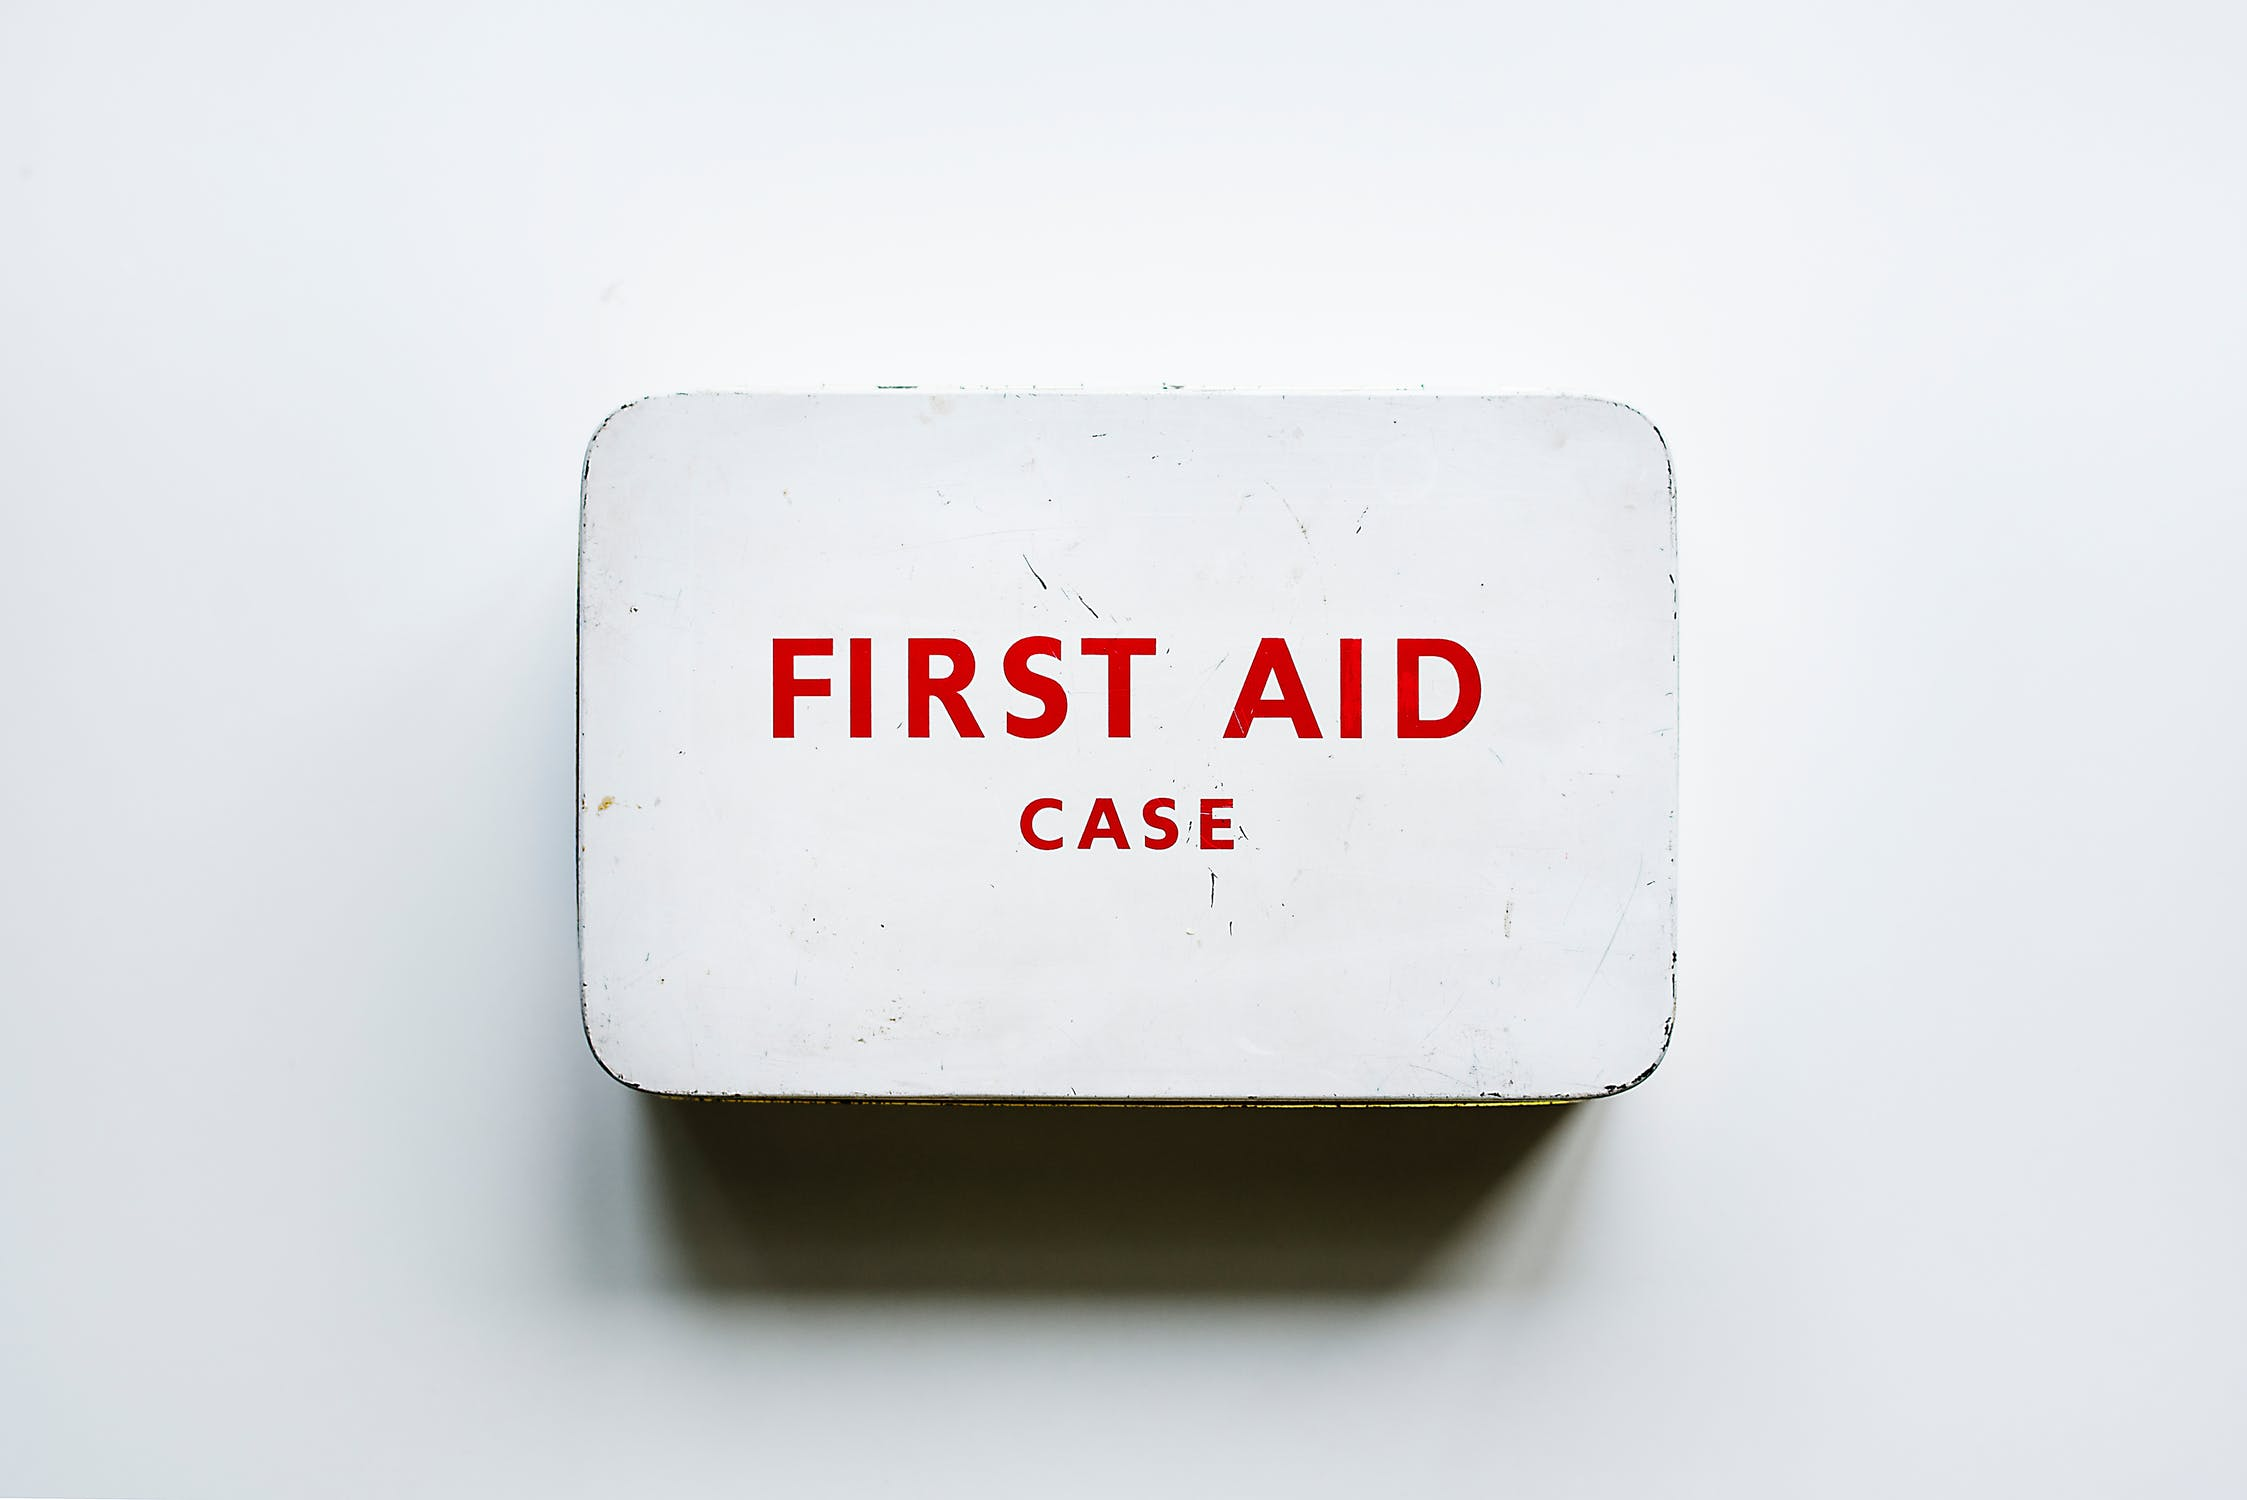 Aids-info, first aid